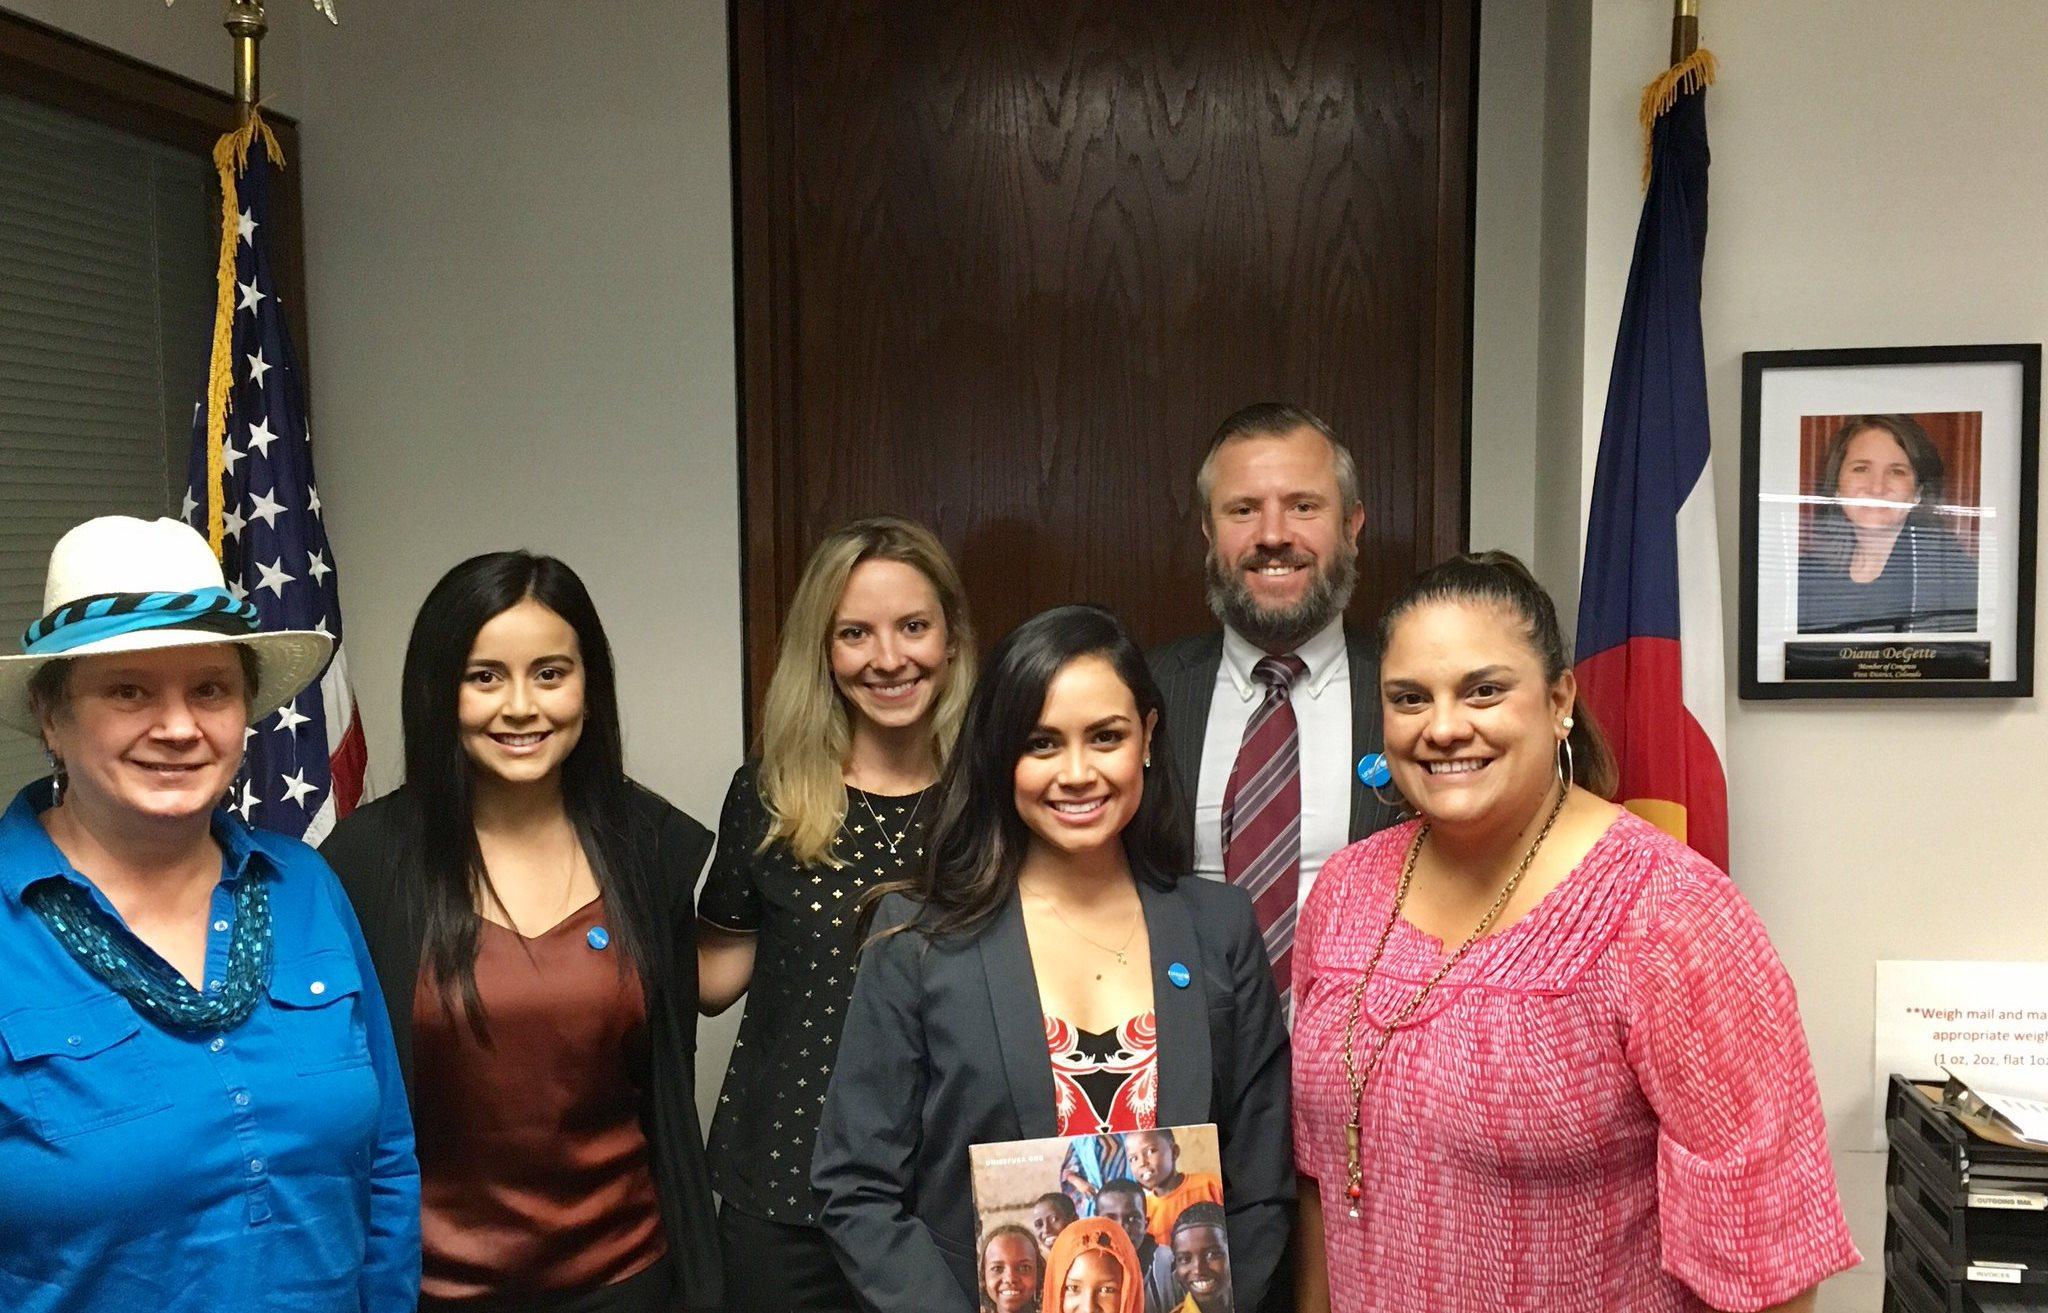 Denver CAT Members (left to right) Sara Marsden, Andrea Colmenero, Kristen Norton, Alejandra Colmenero, and Greg Collins meeting with Senior Congressional Aide to Rep. Diana DeGette, Stephanie Davila-Syner